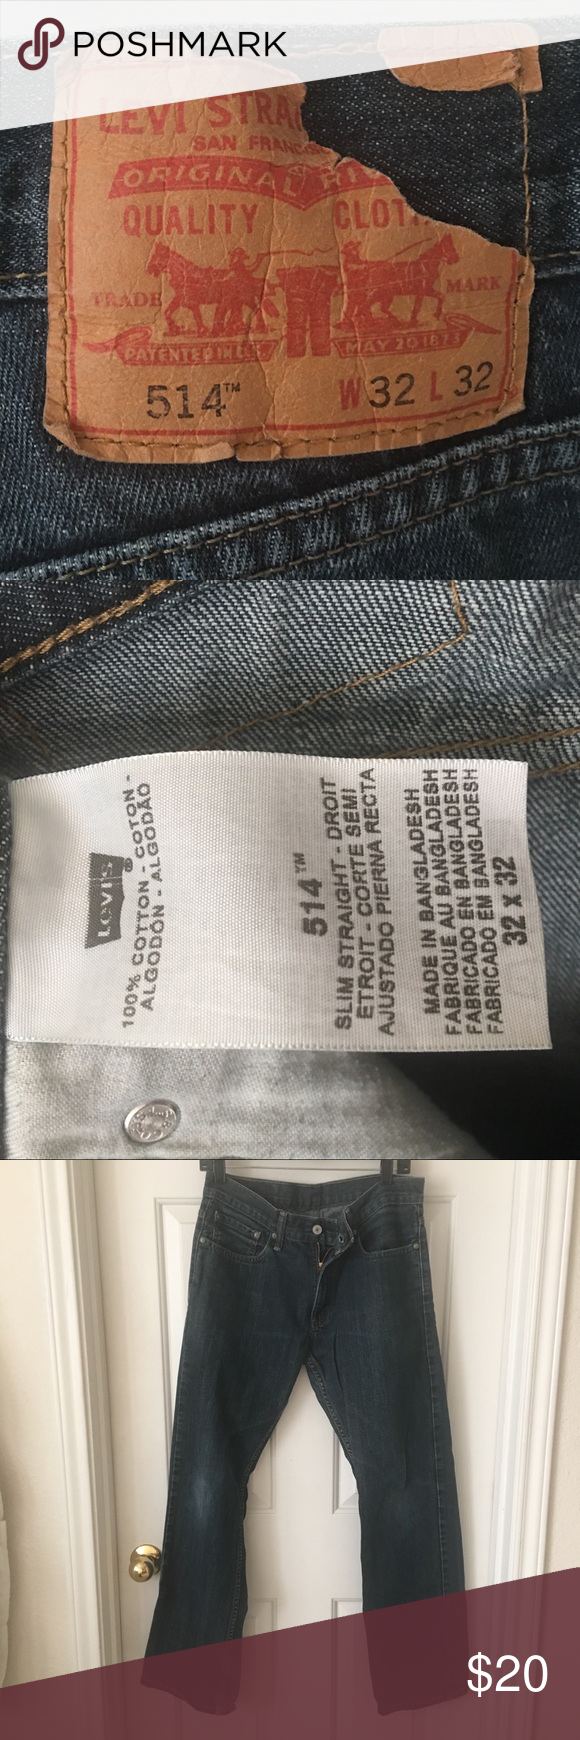 3cf86698f80 Men's 514 Levi's Slim Straight Jeans Men's 514 Levi's 👖 Style: Slim  Straight Size: 32 x 32 Pre loved with lots of life left in them 👍🏼 None  smoking ...